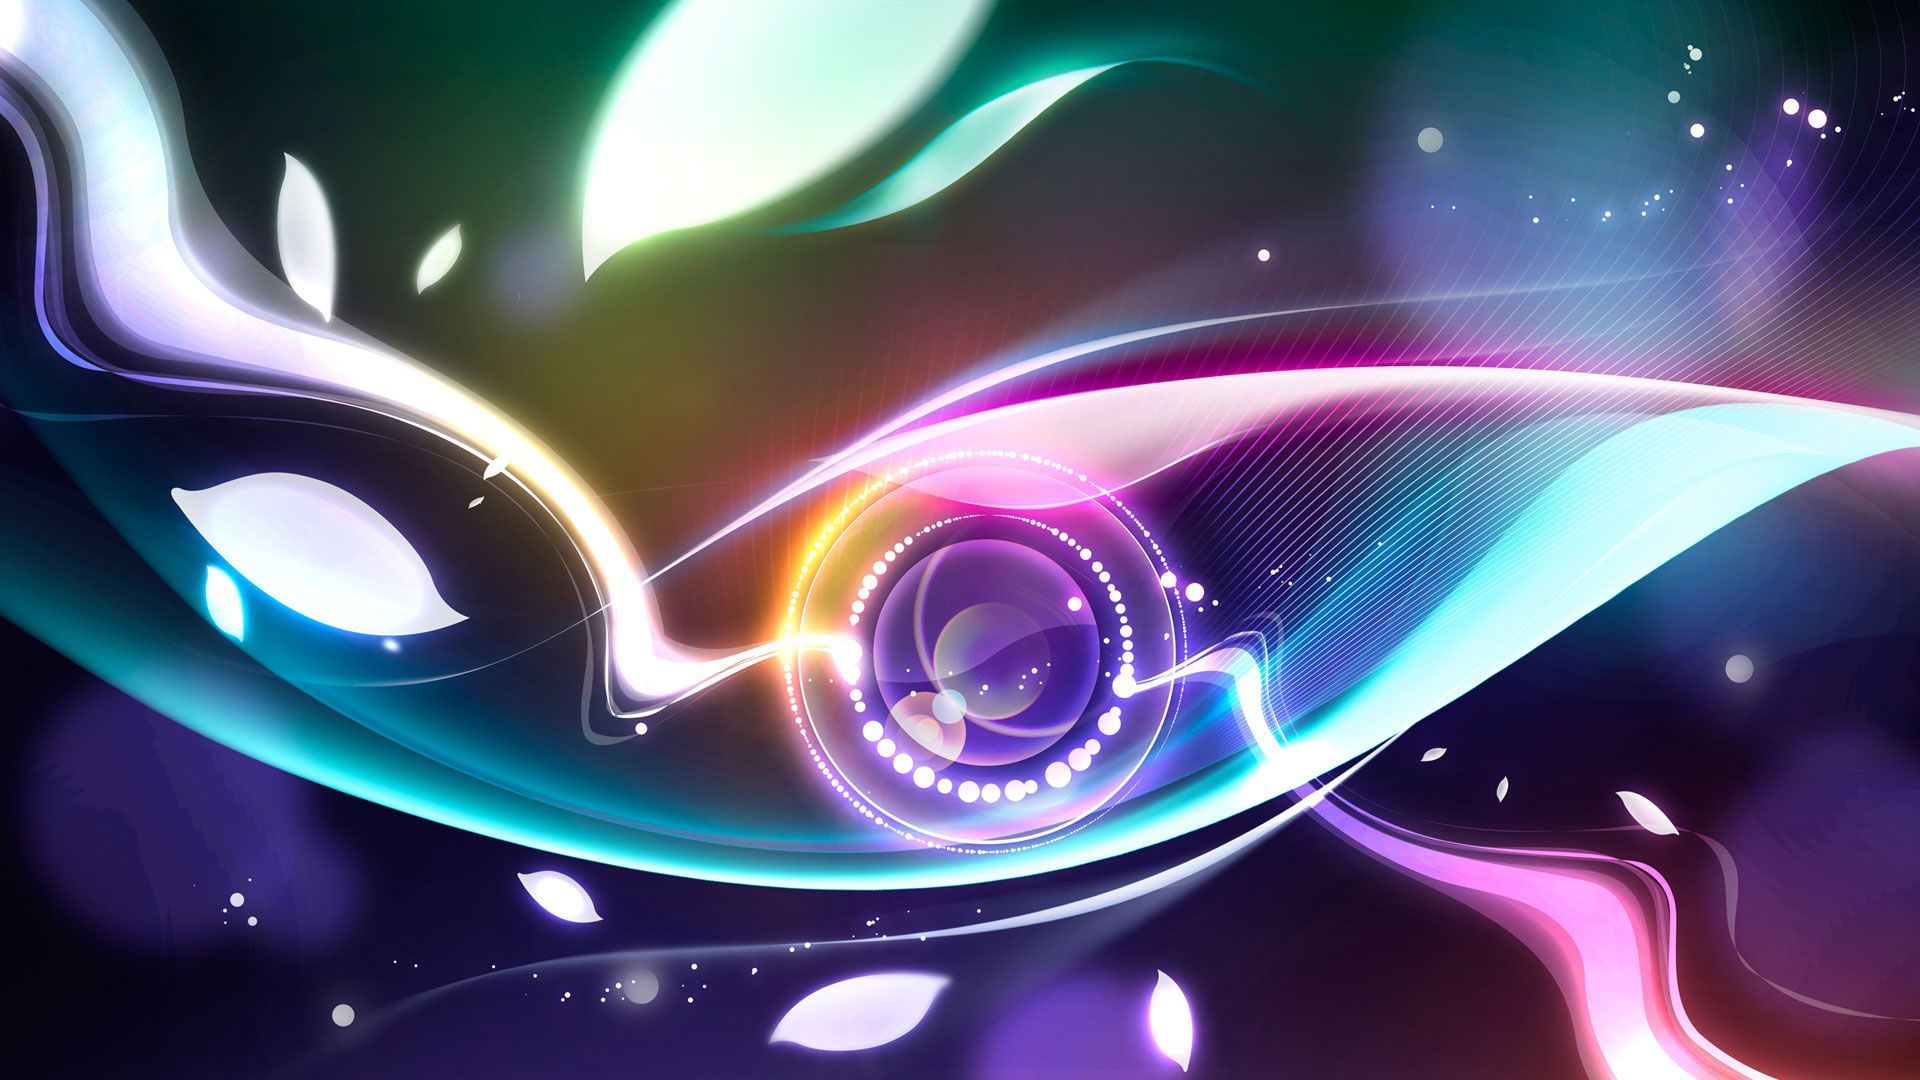 digital abstract eye HD is an HD wallpaper posted in Abstract category. You can edit original image, you can download free covers for Facebook, Twitter or Google Plus or you can choose from download links resolution of the wallpaper that fit on your display.